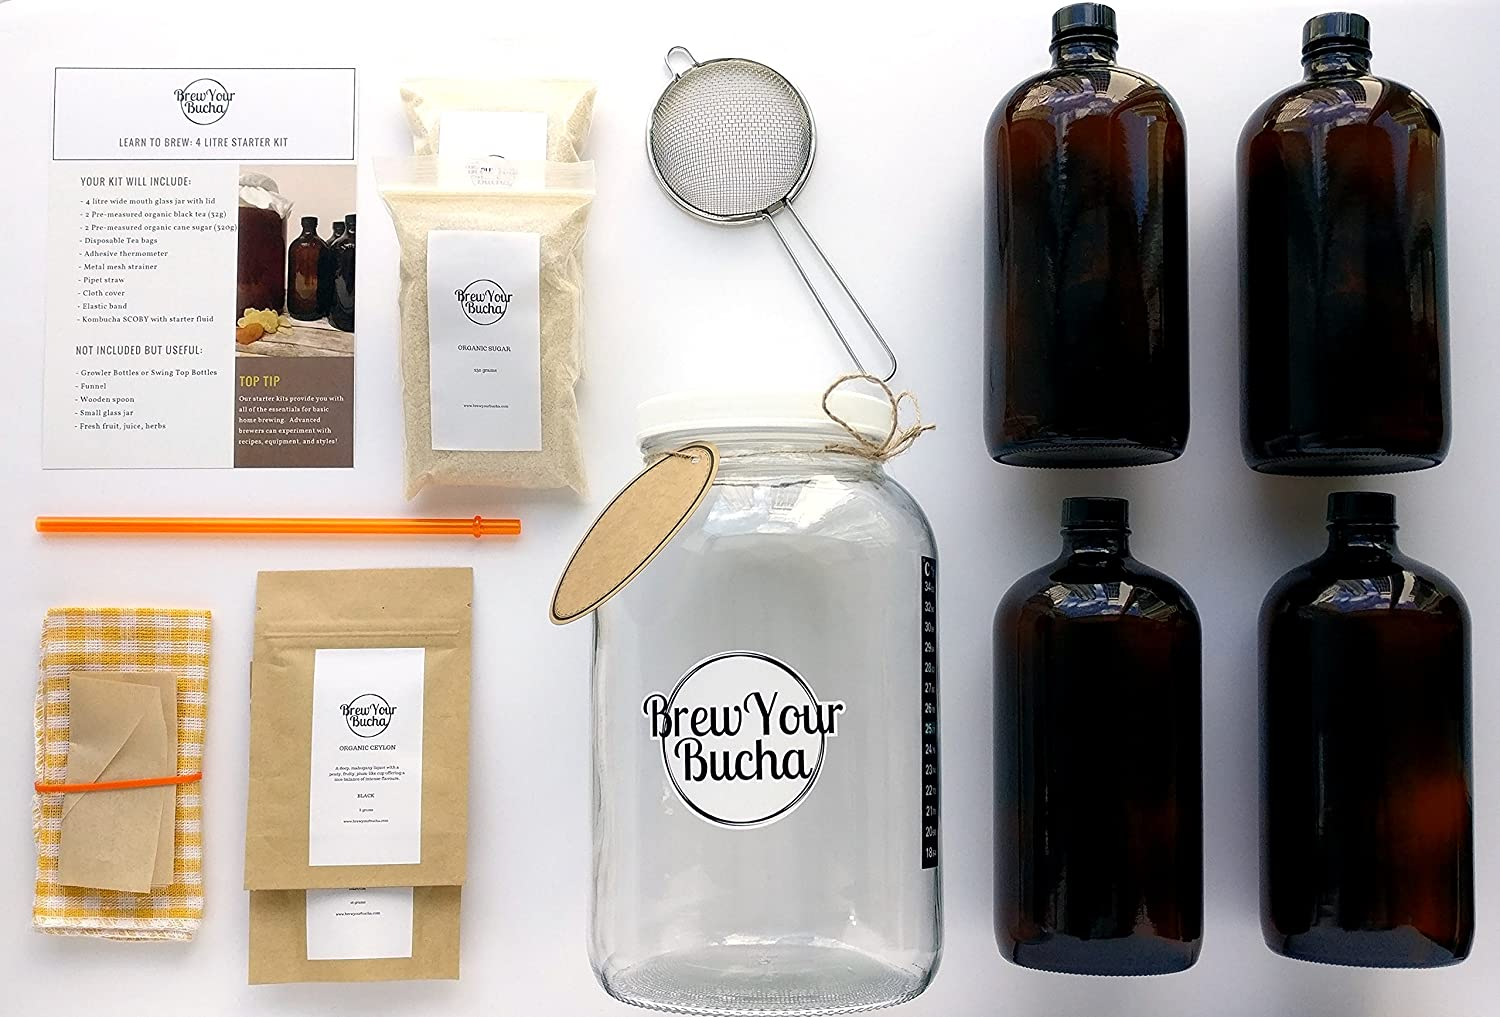 Complete Organic Kombucha Homebrew 4 Litre Deluxe Starter Kit for 2 Brews. with Instructional Videos, Recipes, Interactive Forum, and Live Chat Assistance. Brew Your Bucha